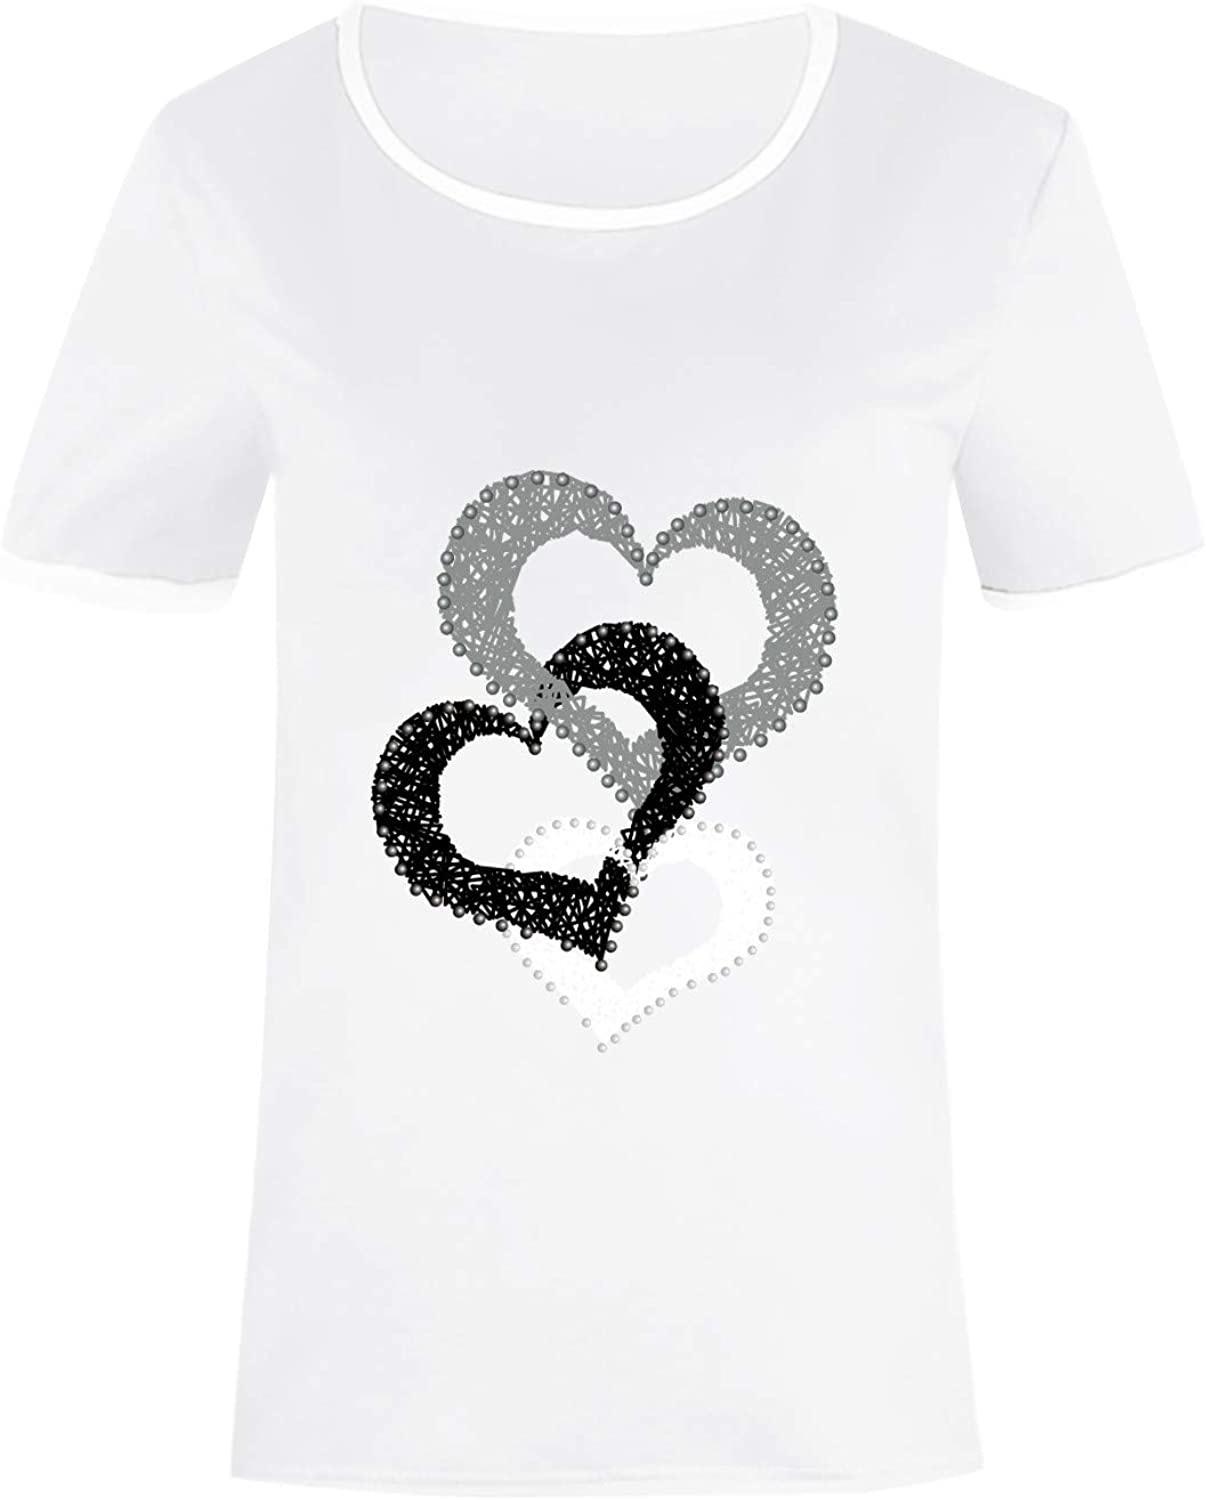 Aukbays Womens Short Sleeve Tops Heart Printing Graphic Vintage Tshirt Round Neck Pullover Casual Shirts Tees Blouses